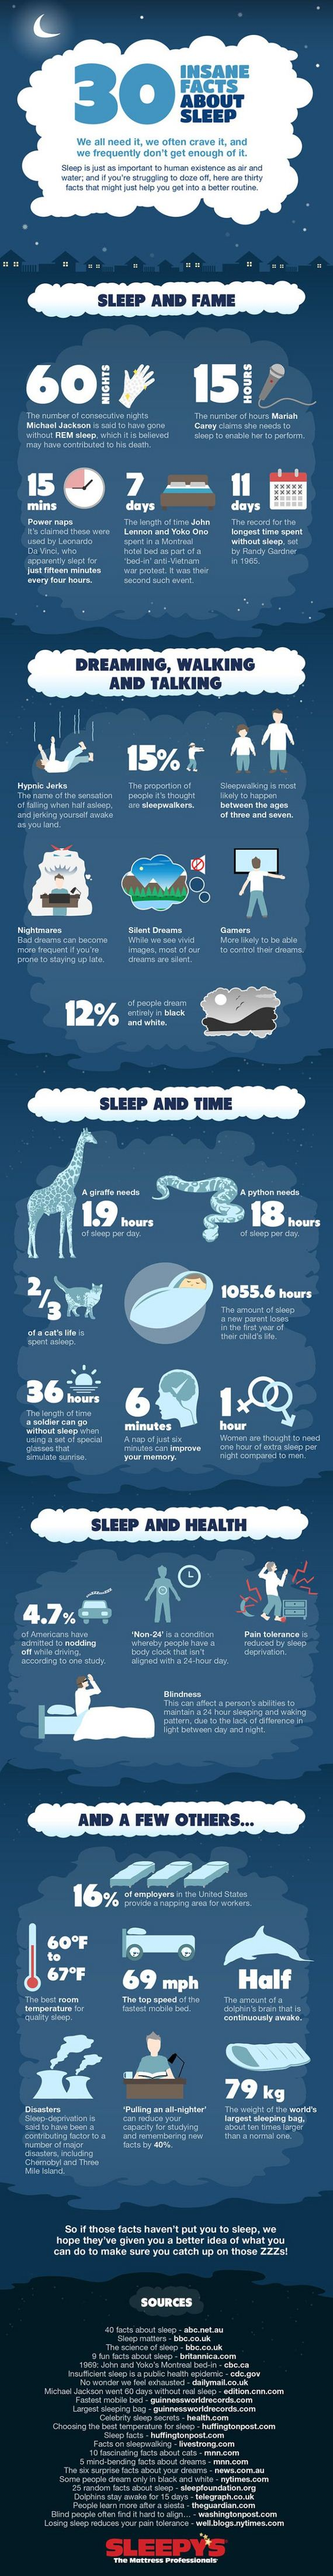 facts_about_sleep